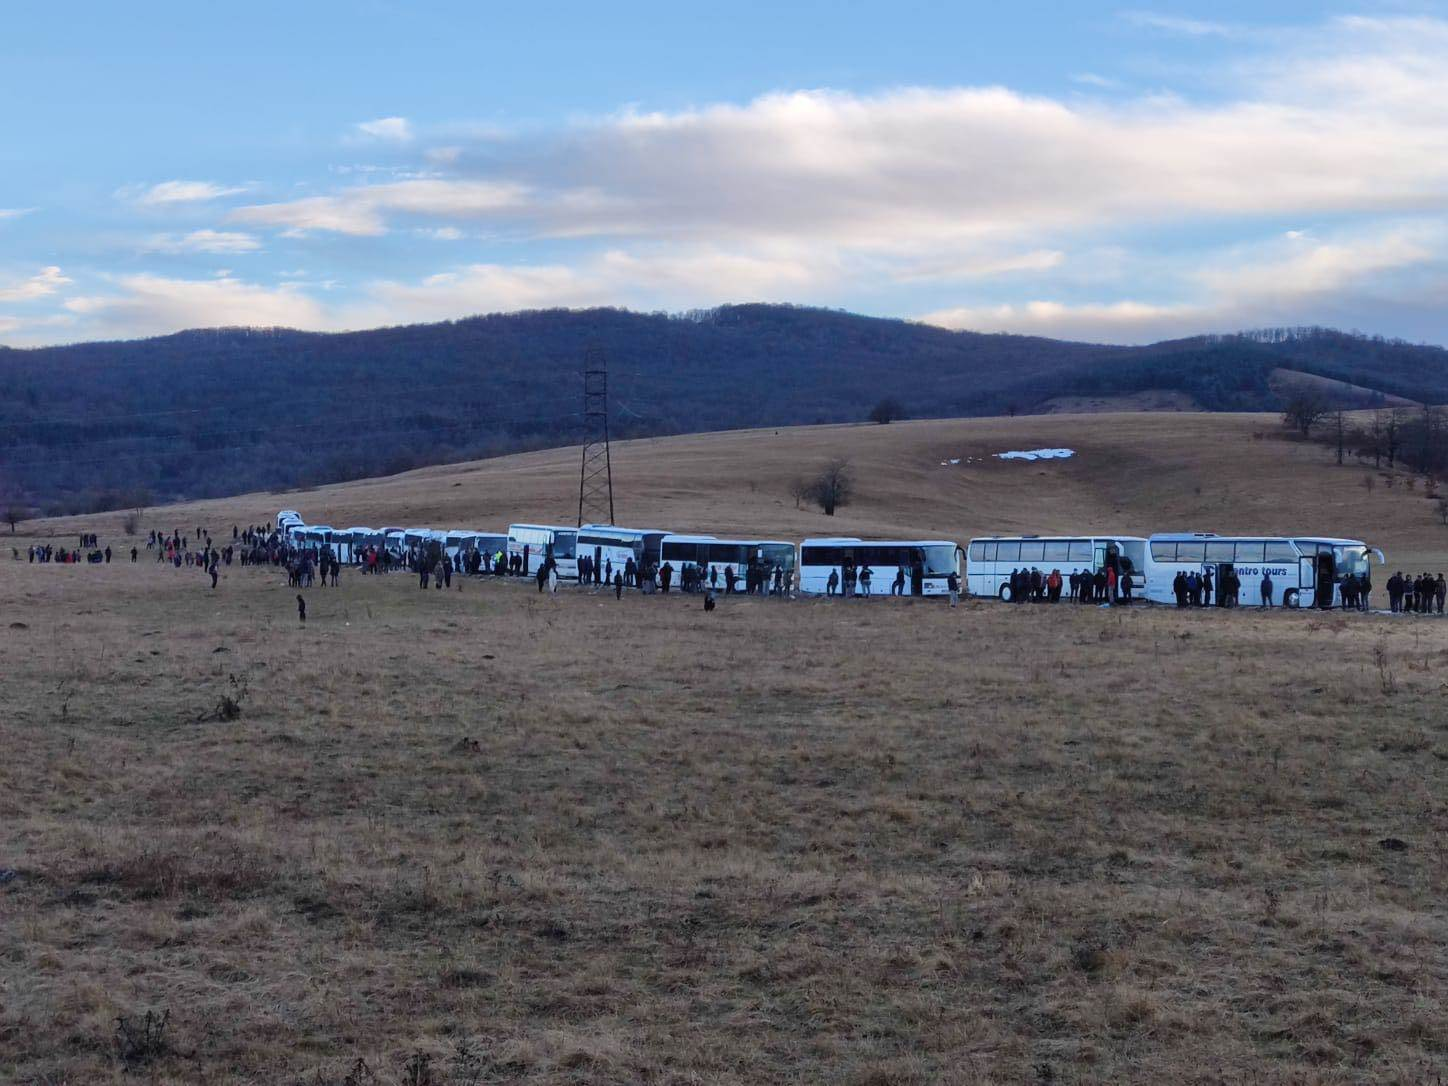 BiH: One thousand illegal immigrants remain stranded in busses